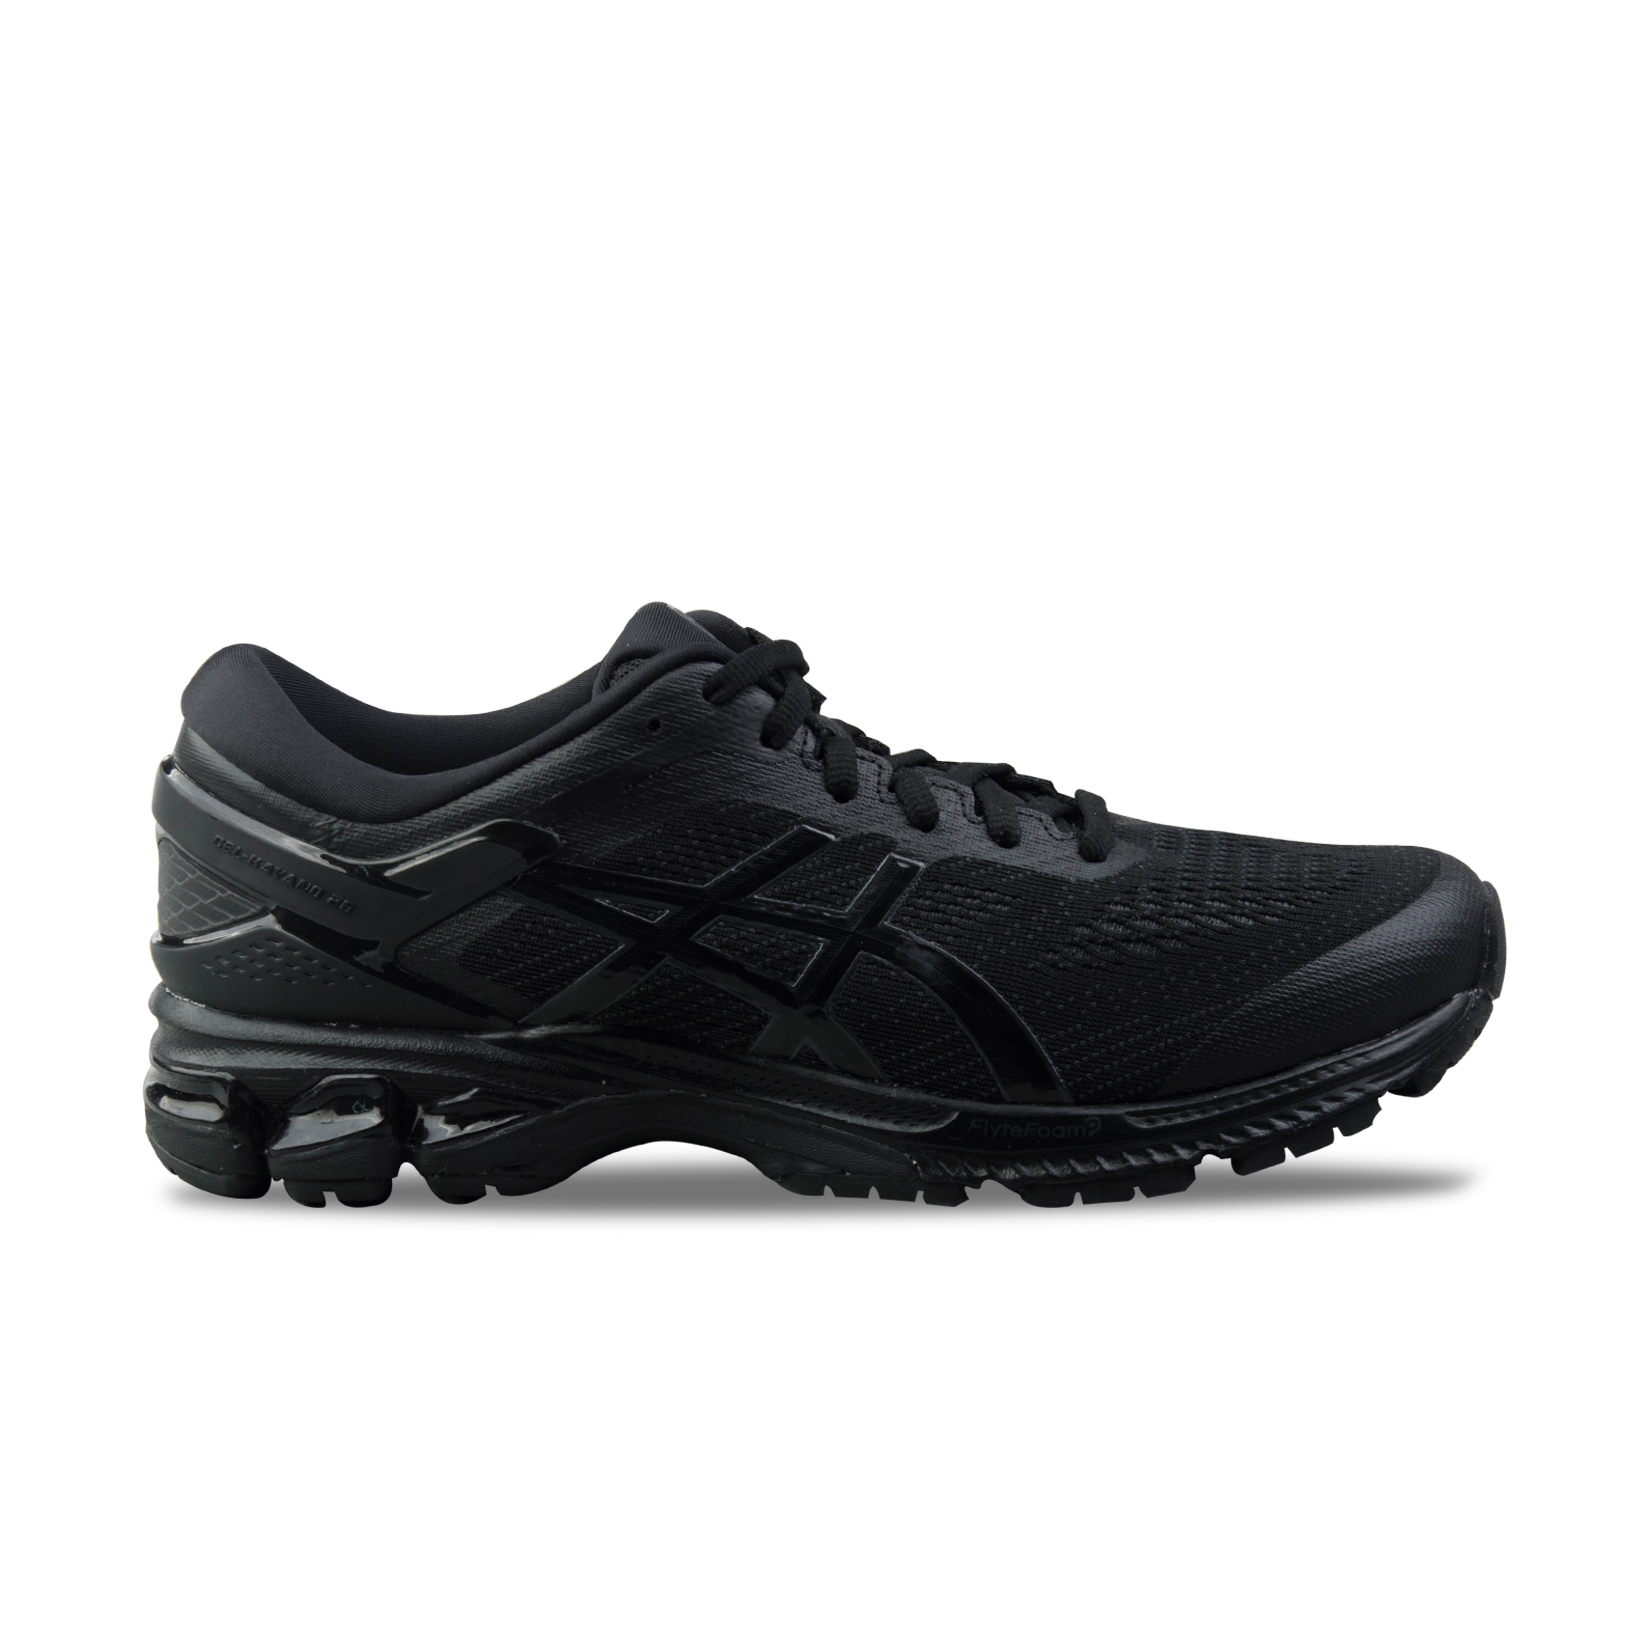 Asics Gel Kayano 26 Black